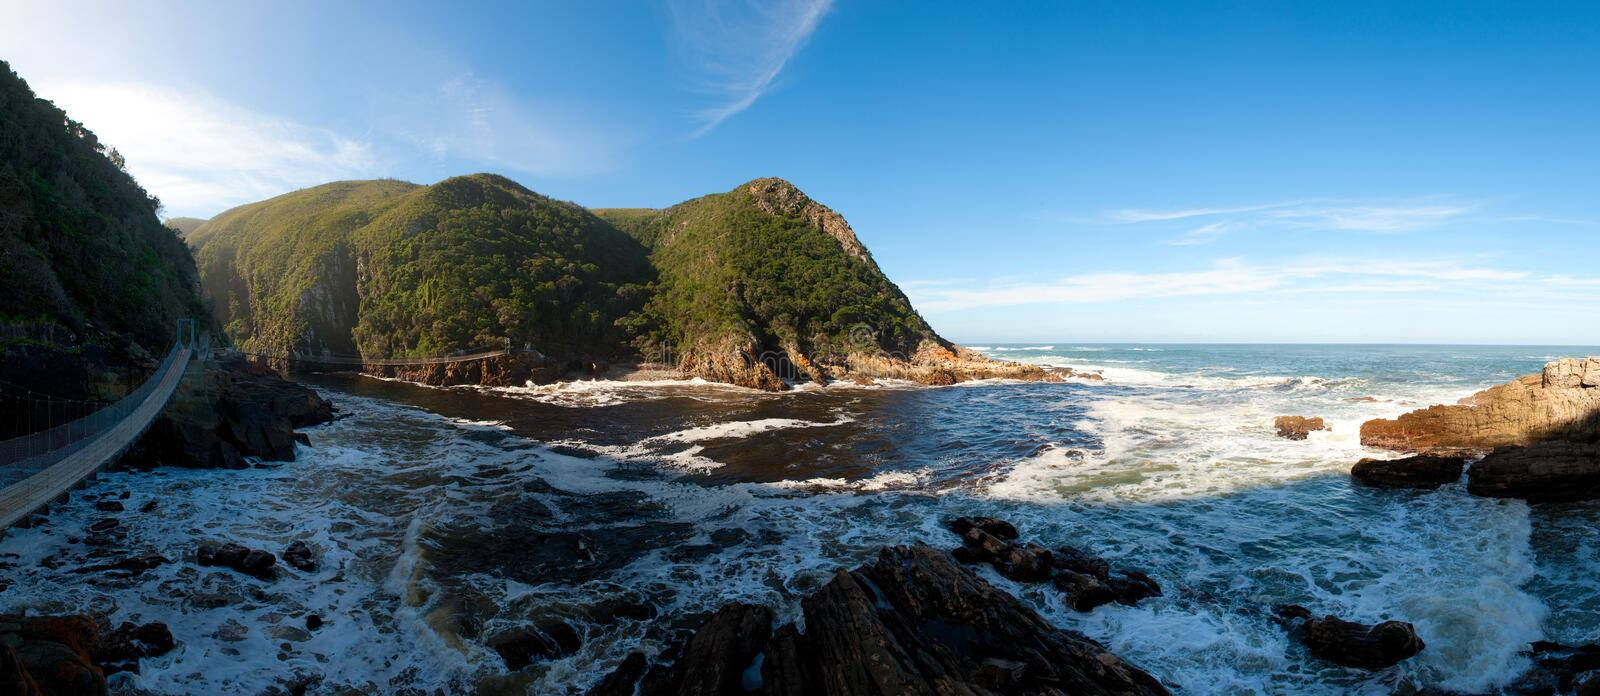 Download Storms River Mouth (Tsitsikamma National Park) Stock Photo - Image: 20277376